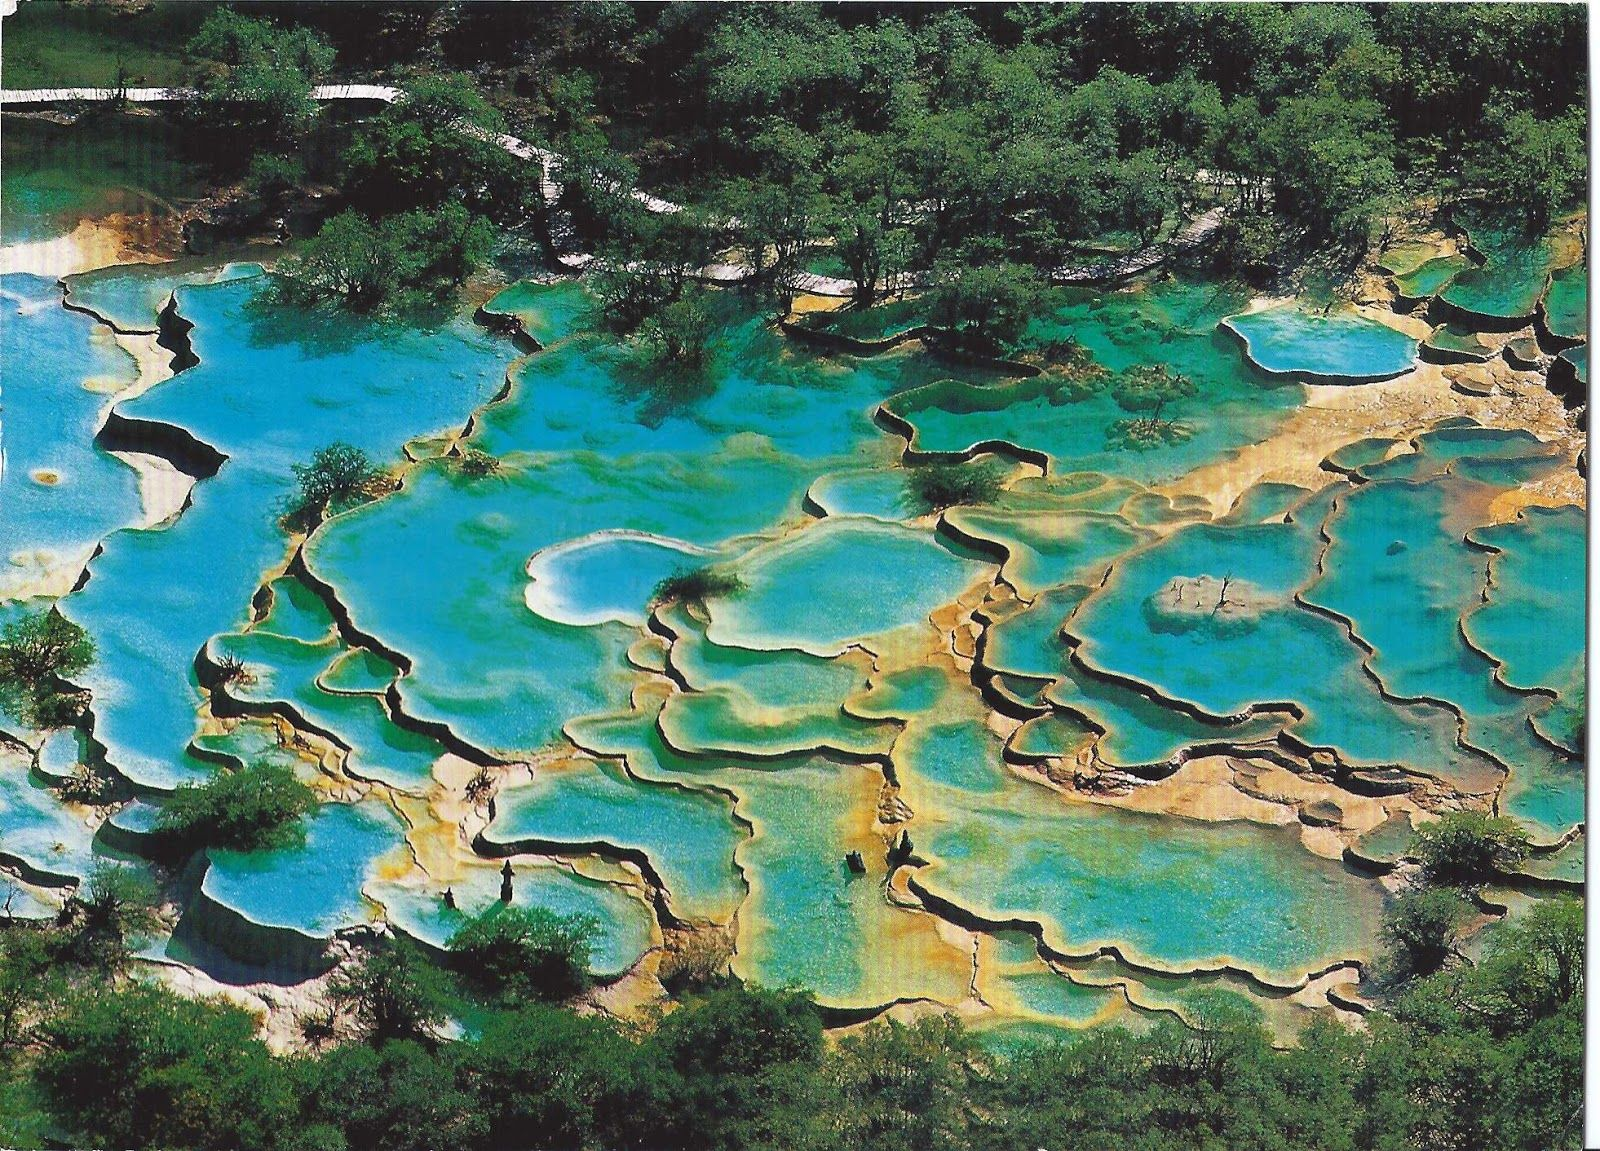 Huanglong Travertine Terraces, a natural wonder Intensely